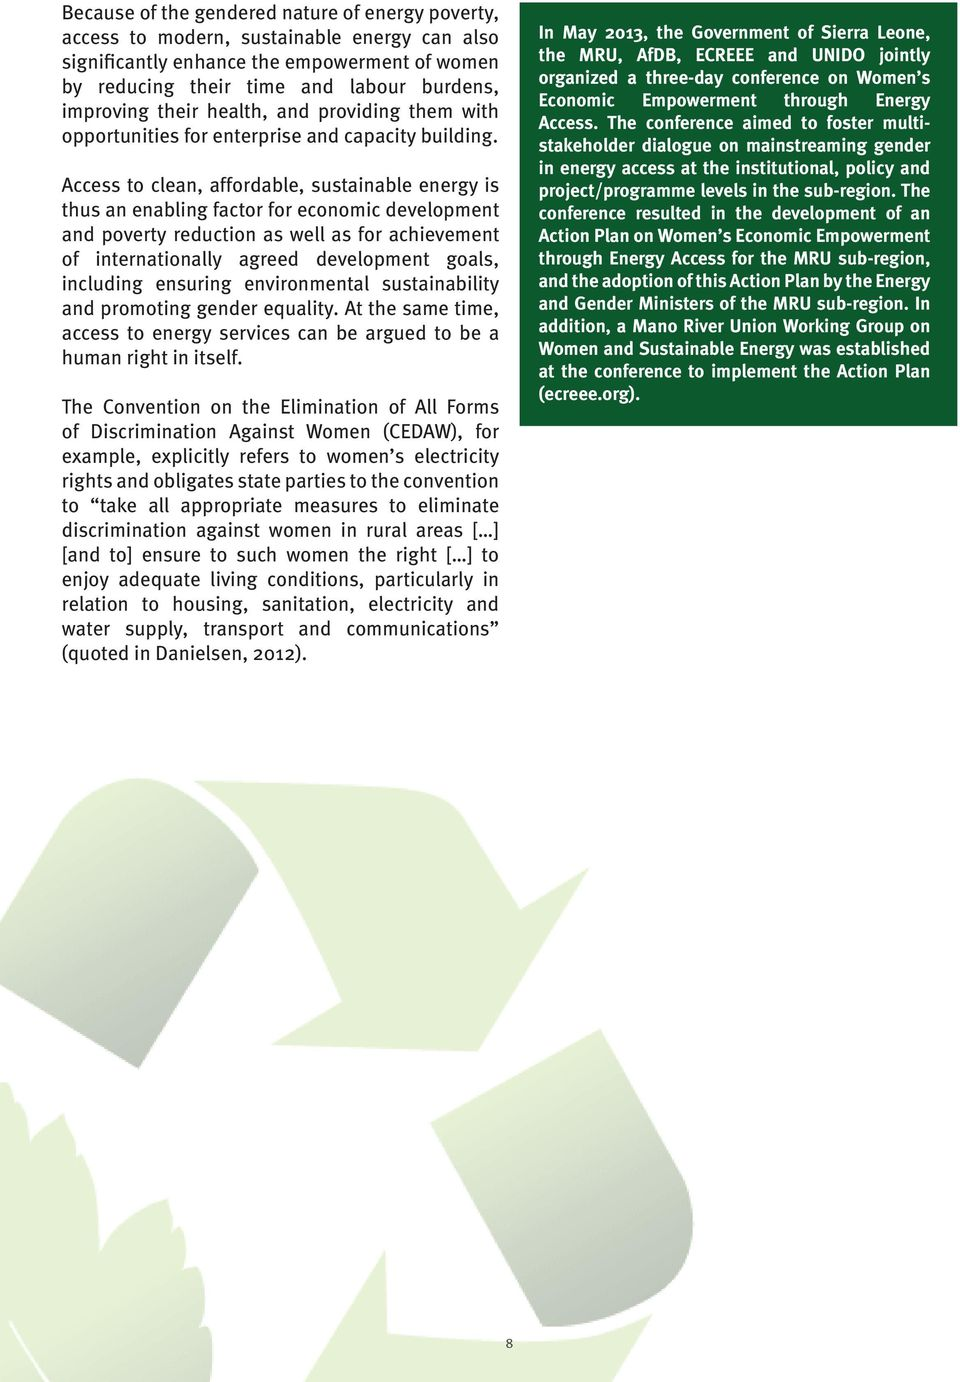 The outcome document of the 2012 UN Conference on Sustainable Development (Rio+20), The Future We Want, called for commitments to specific actions to achieve sustainable development, including